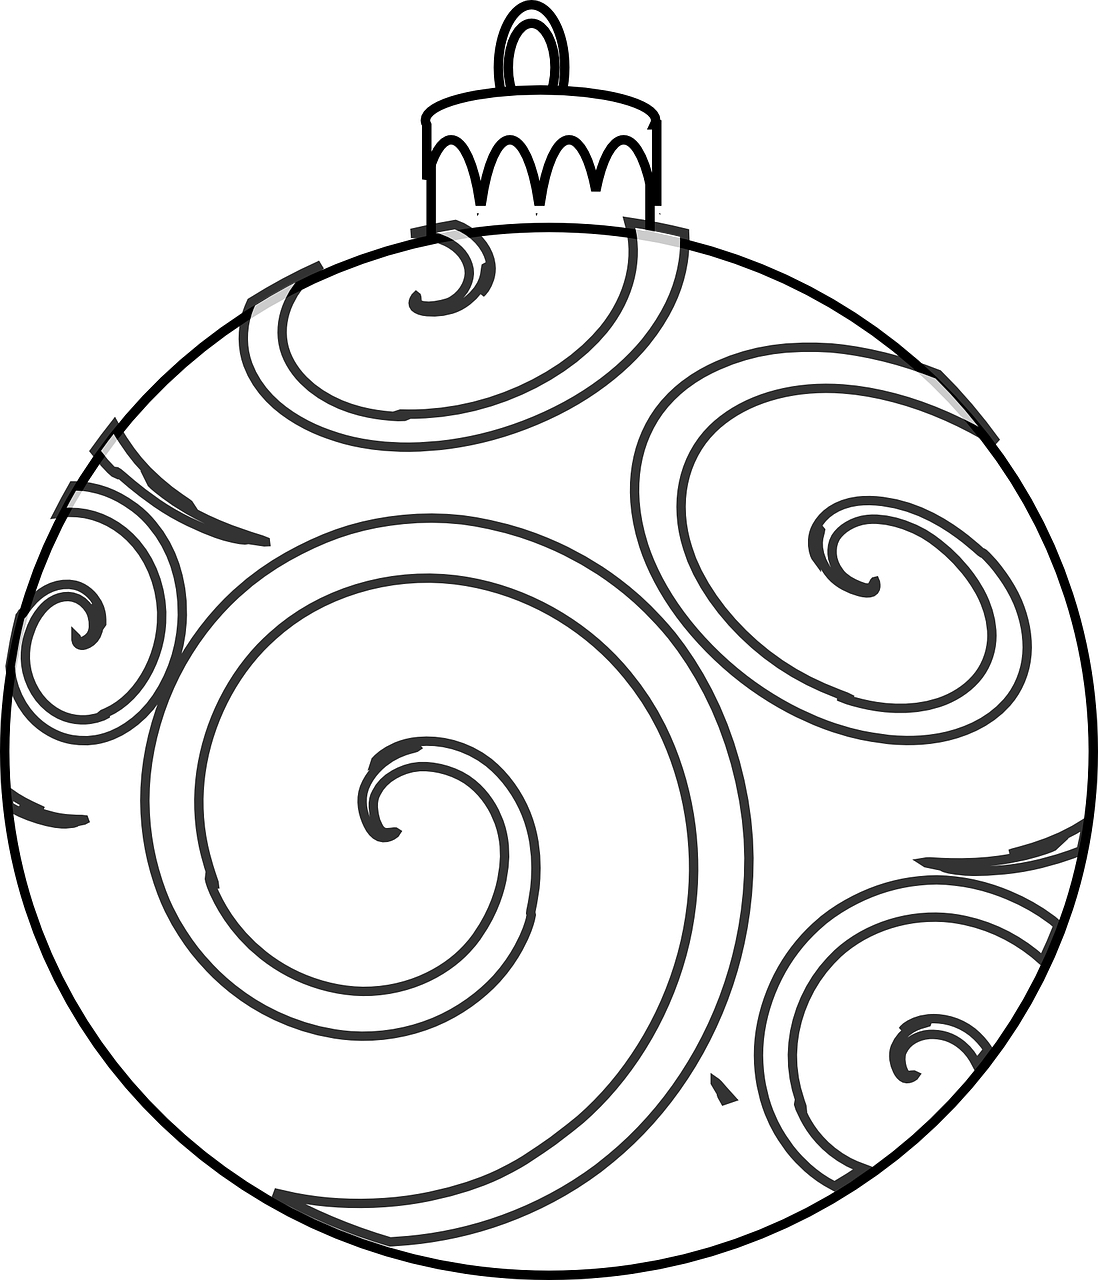 1098x1280 Coloring Page Christmas Ornament Pages For Adults To Print